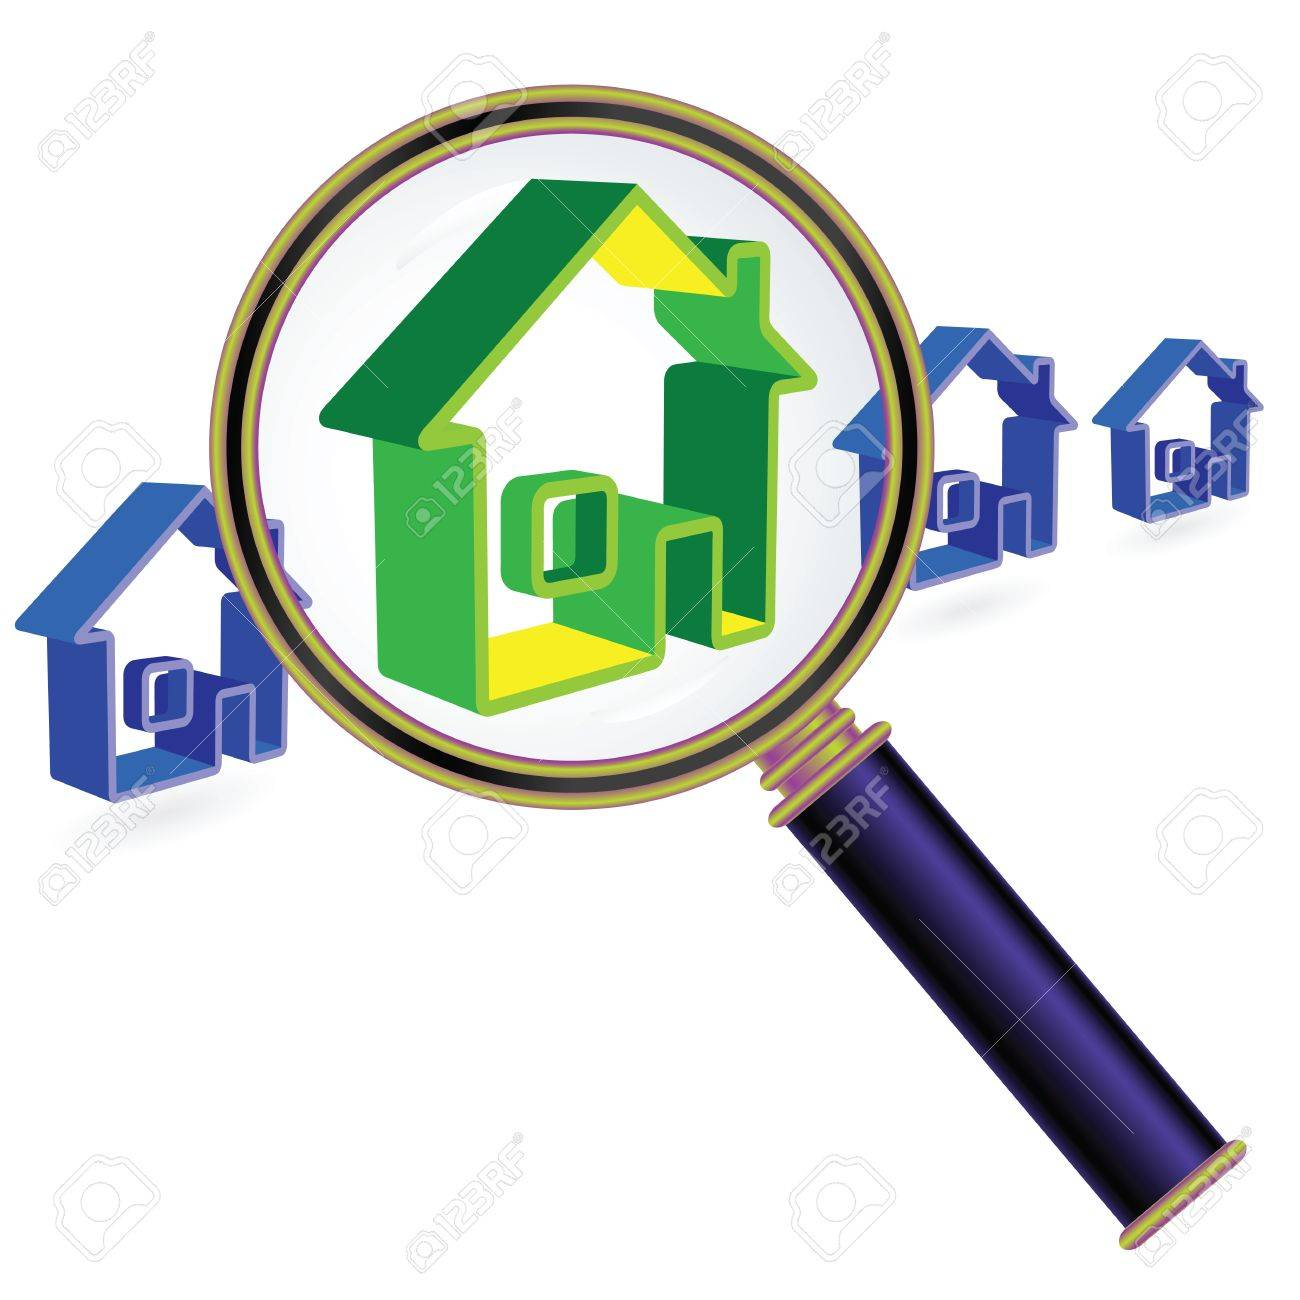 House sign under magnifier glass. Real Estate Concept. Stock Vector - 10822416